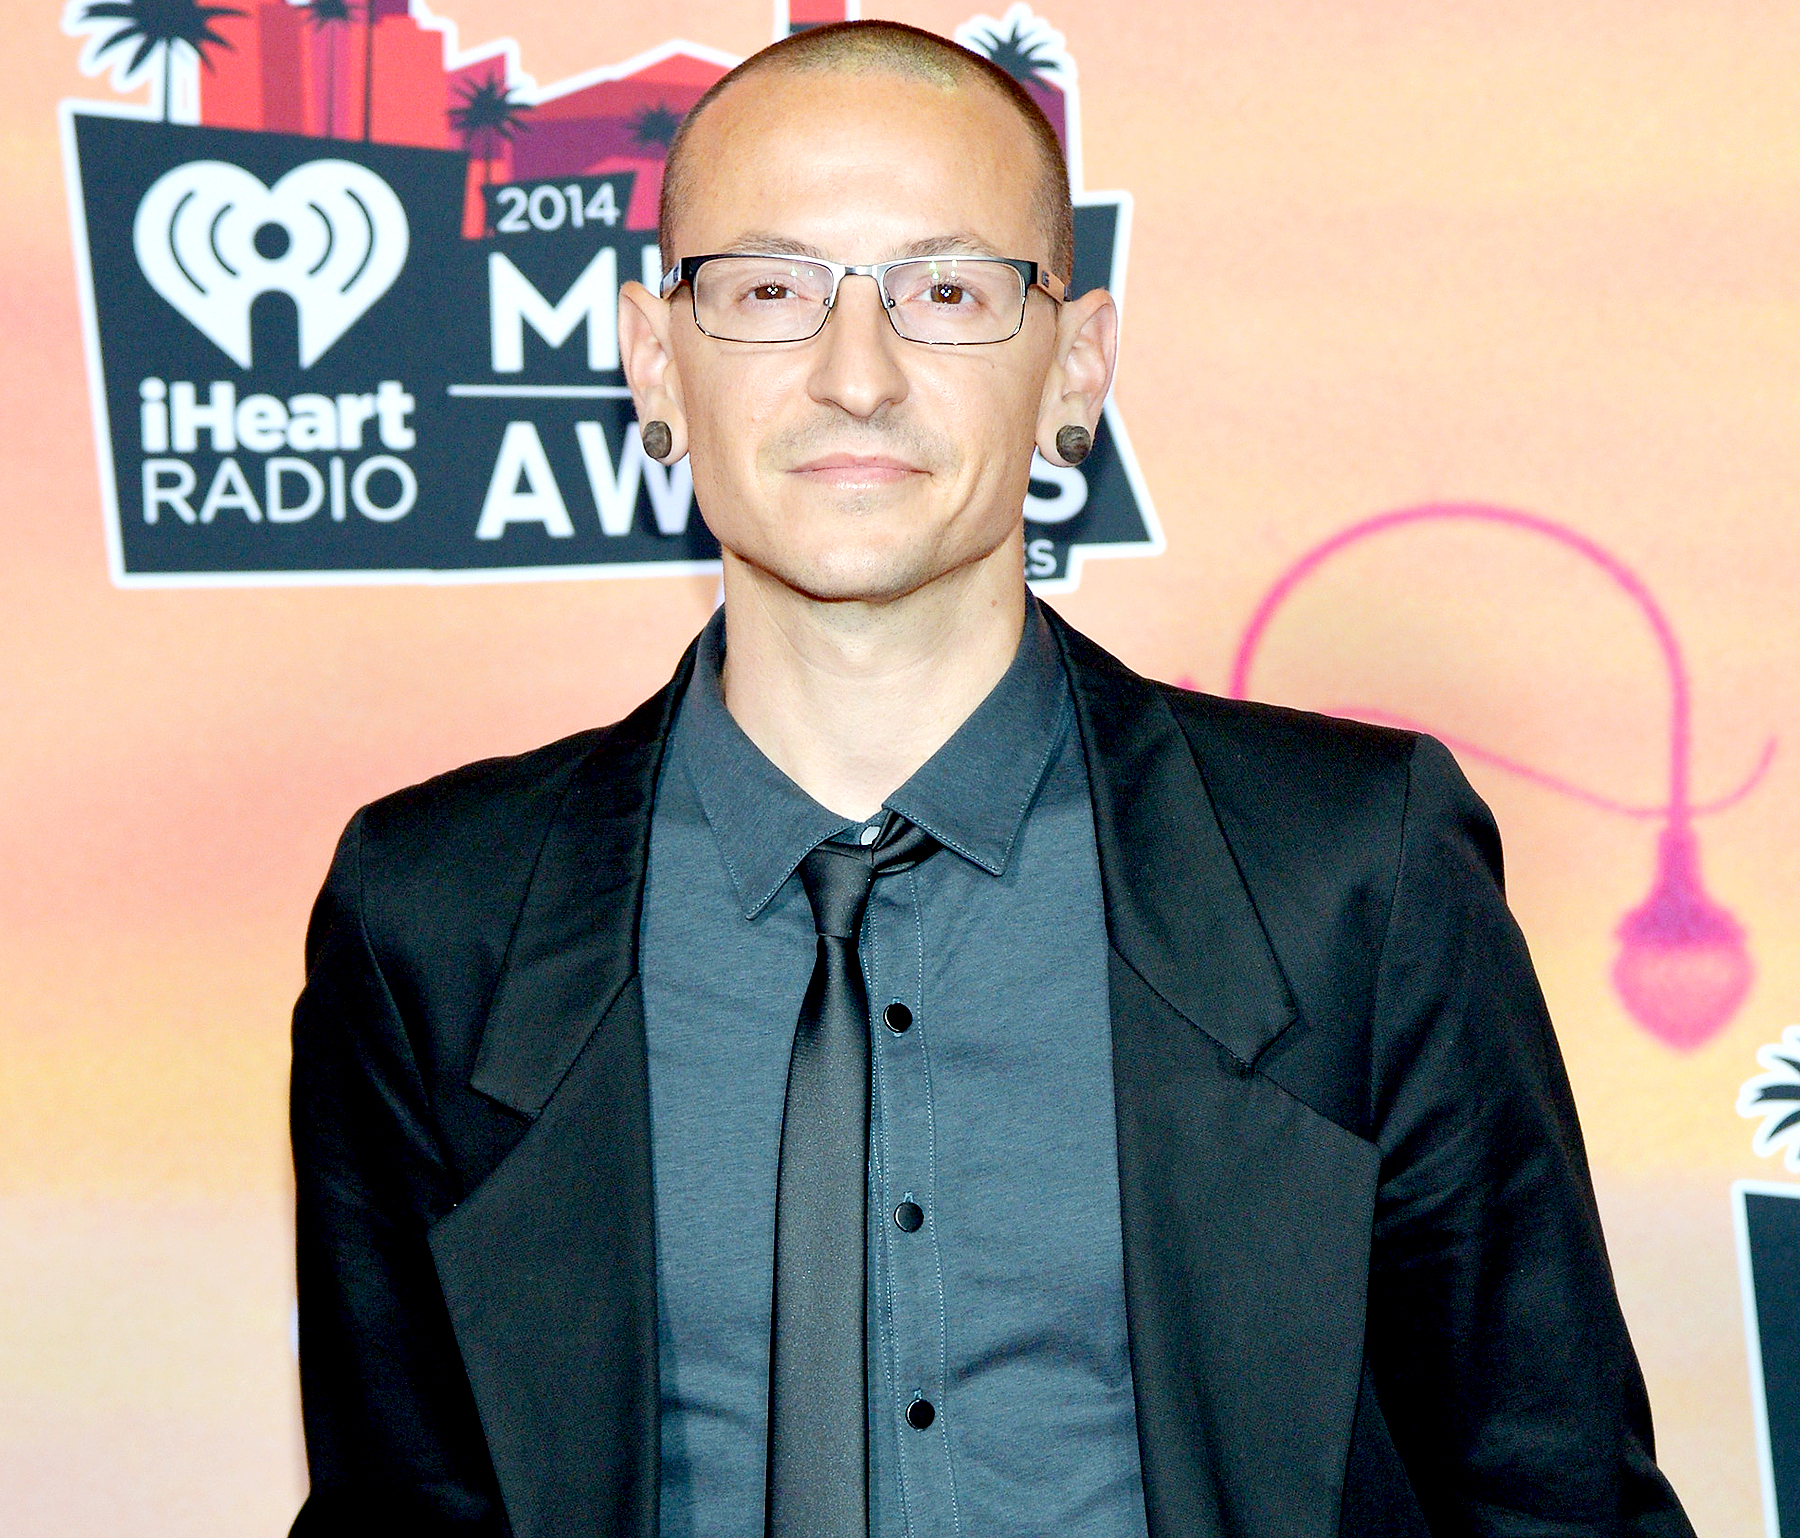 Chester Bennington poses in the press room at the iHeartRadio Music Awards held at the Shrine Auditorium on May 1, 2014.